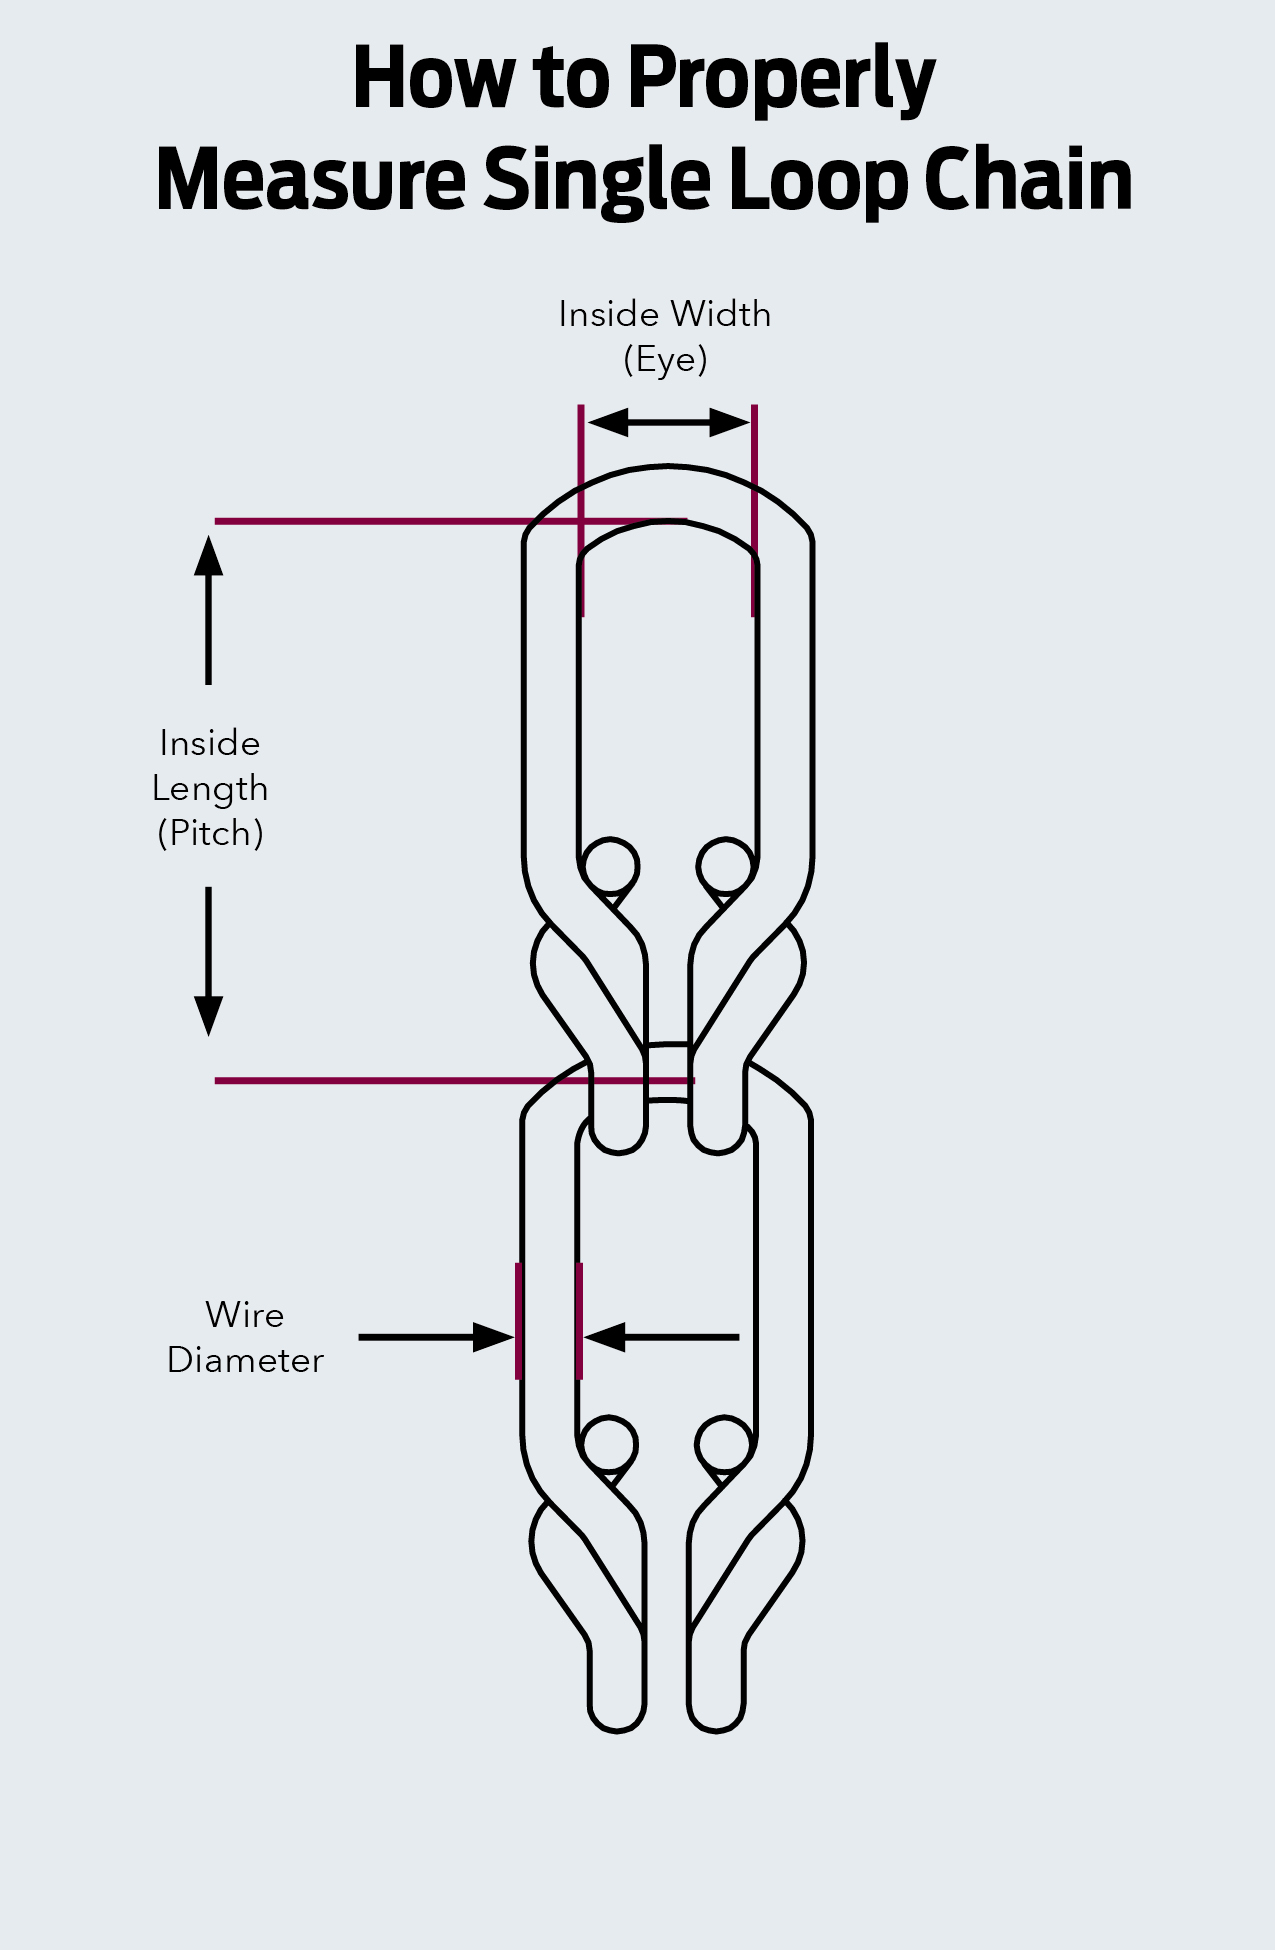 Measure Single Loop Chain